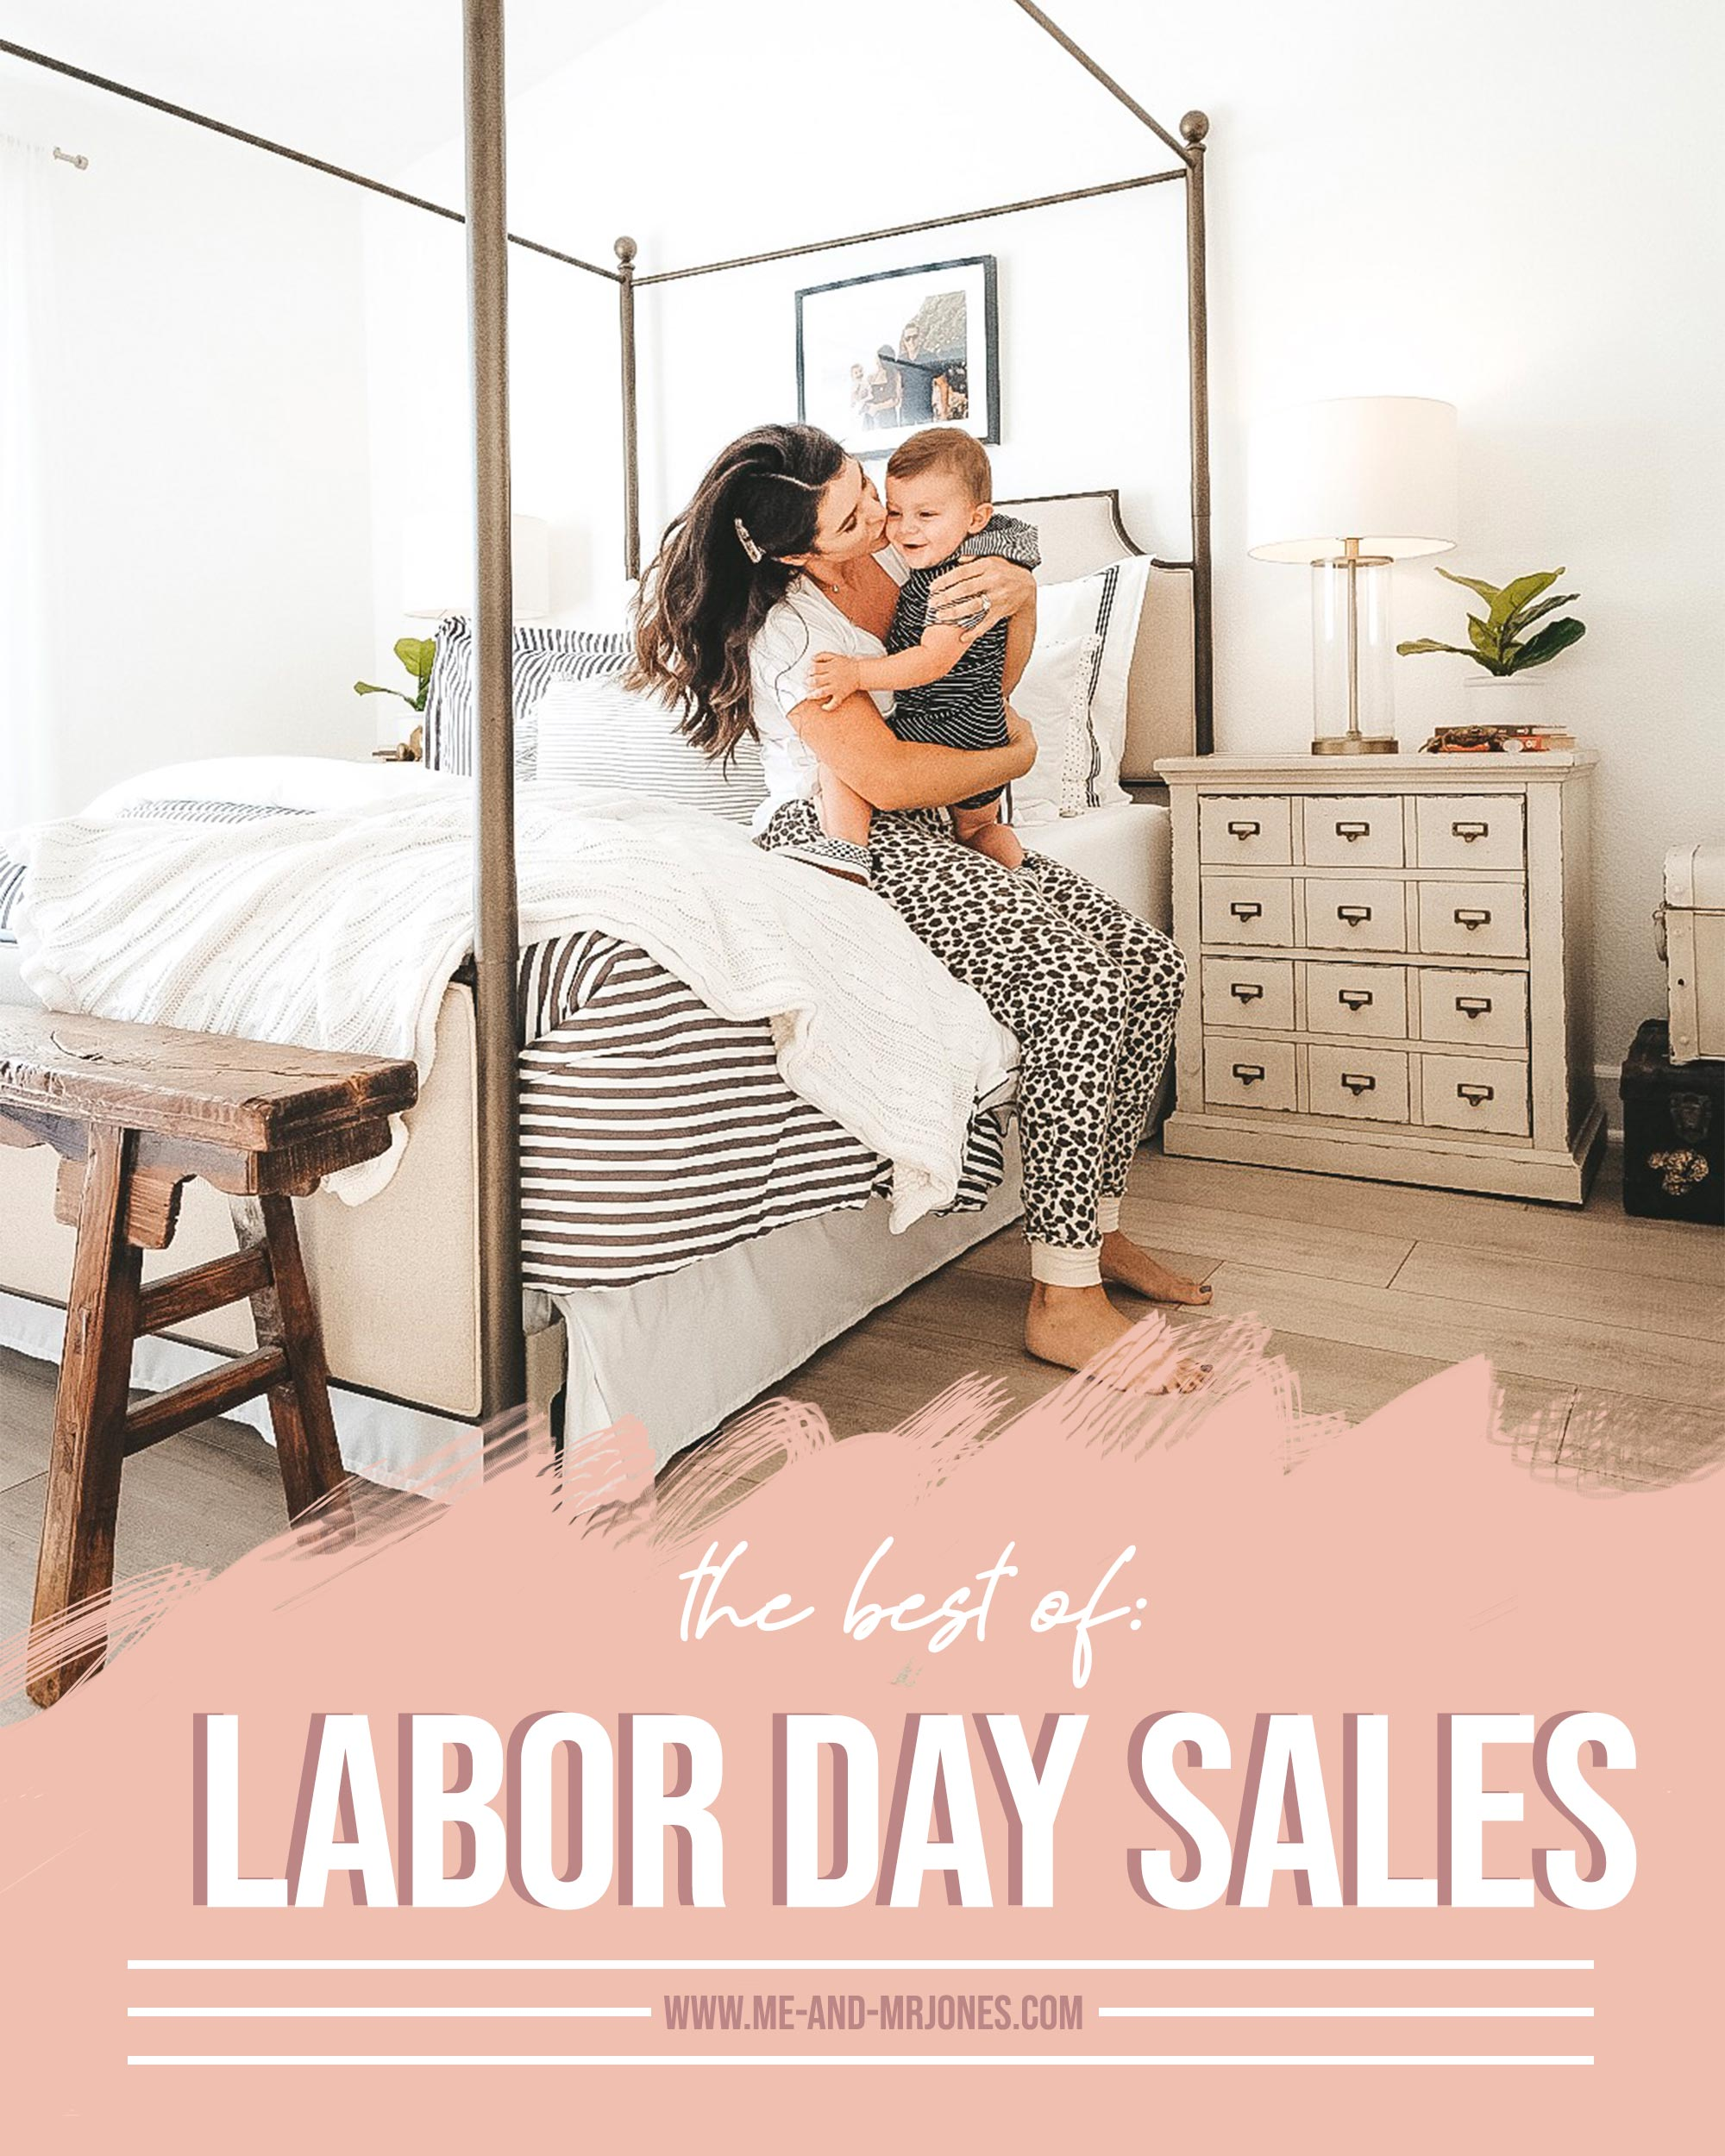 Labor Day 2019 Sales.  Women's clothing on sale for labor day.  Kids clothing on sale for labor day.  Home decor and furniture on sale for labor day.